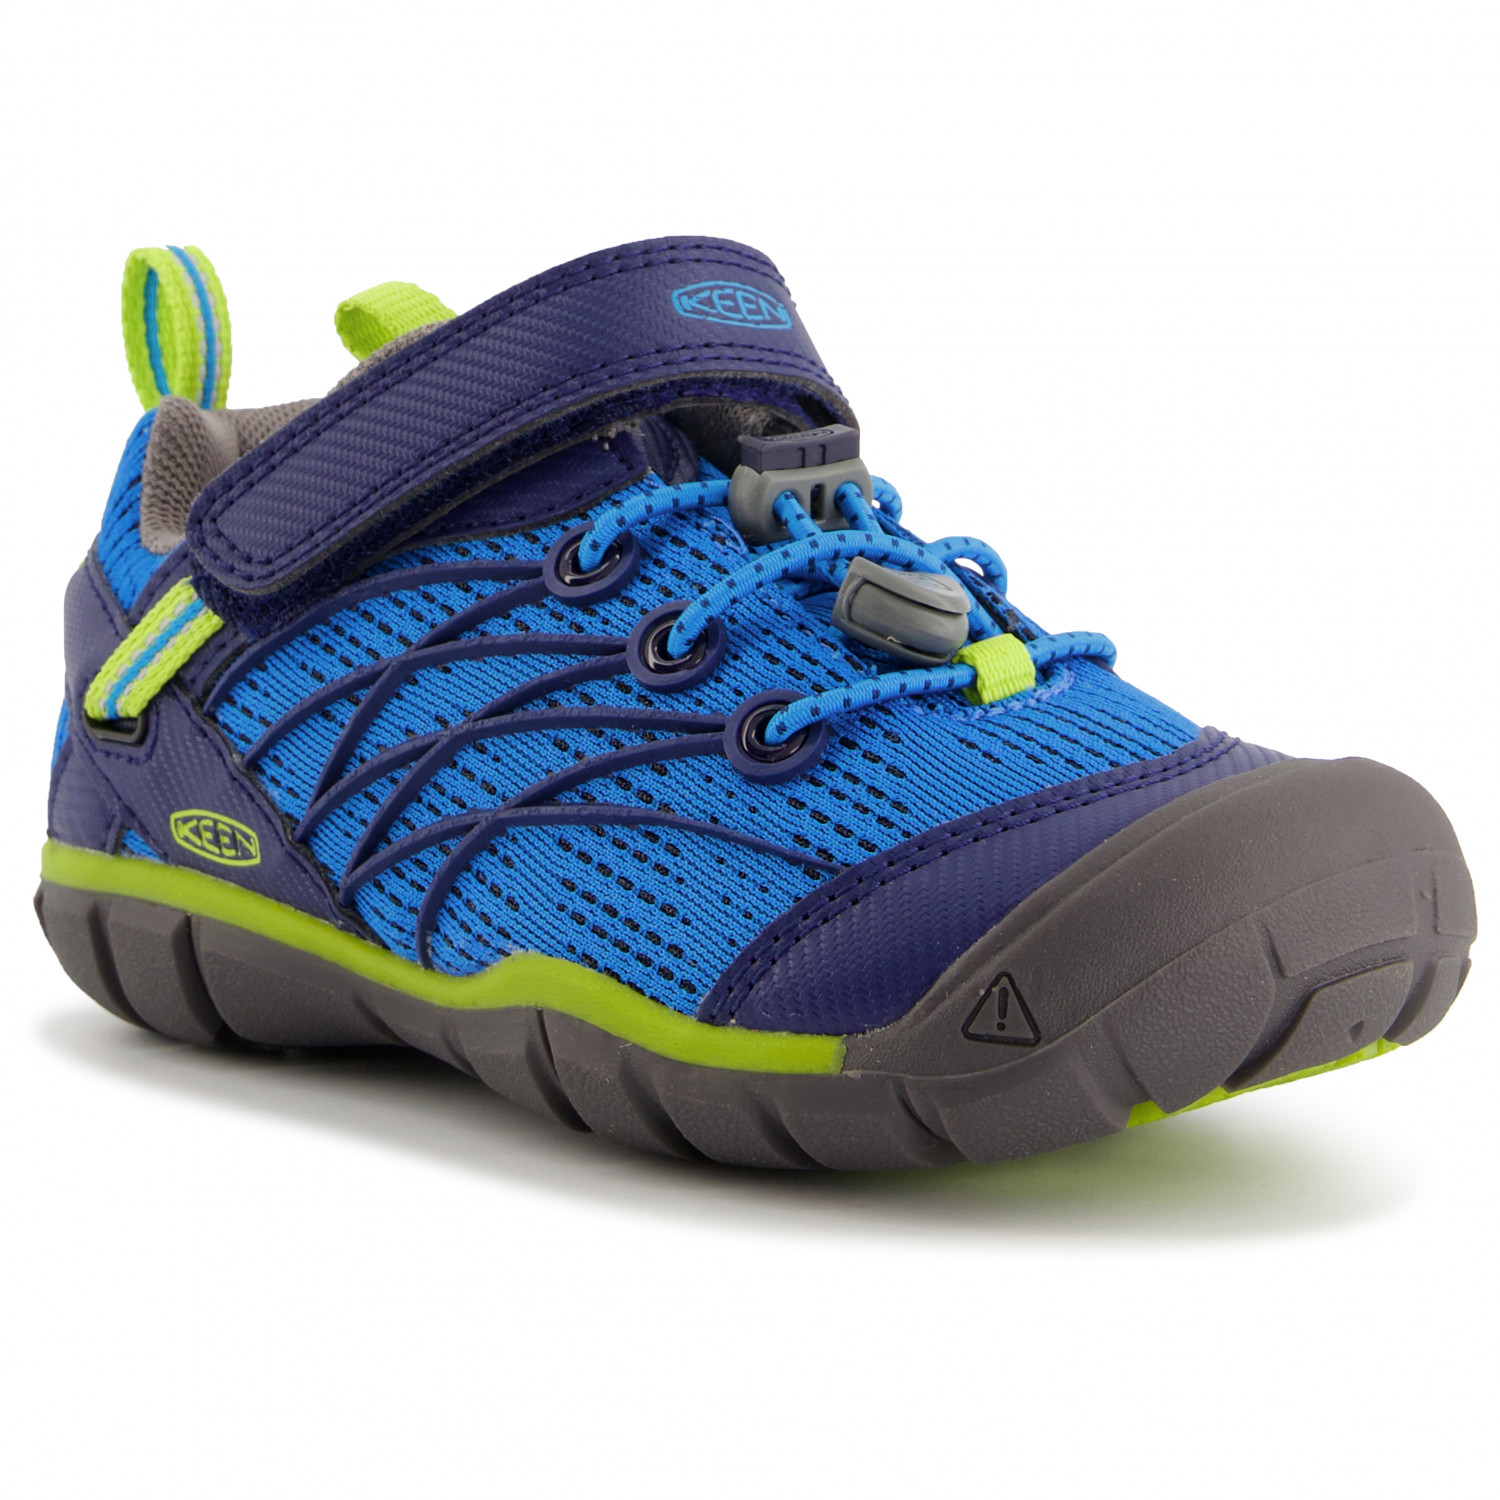 e51c086d9de Keen Chandler CNX - Multisport Shoes Kids | Buy online | Alpinetrek ...